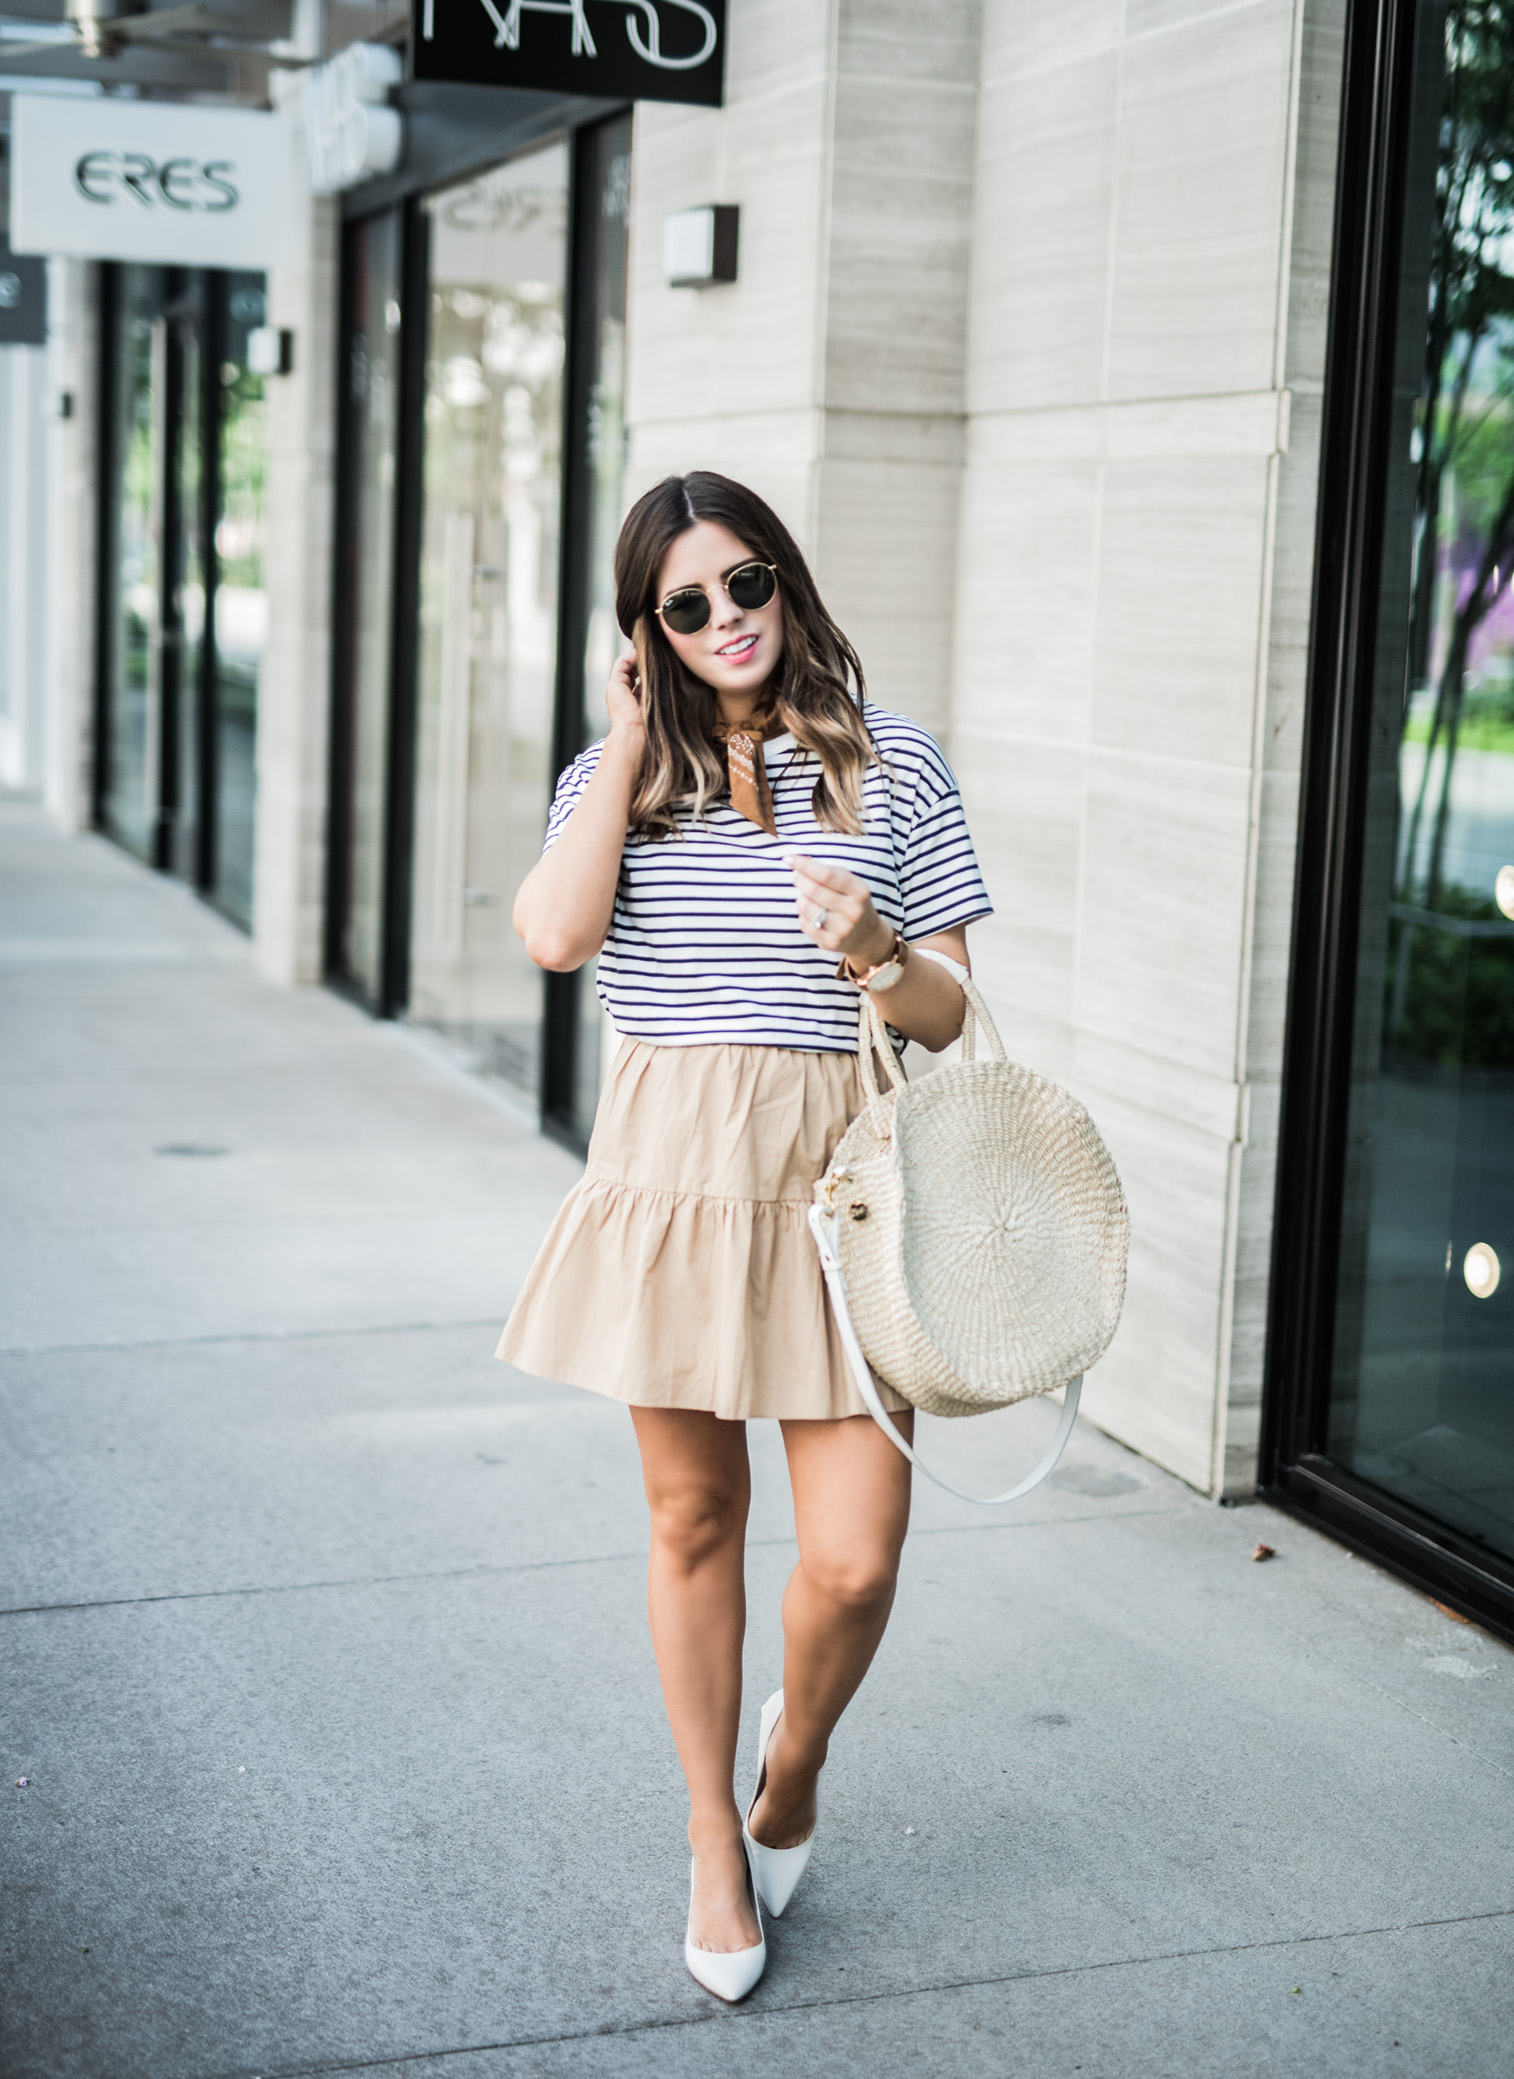 Tiffany Jais Houston fashion and lifestyle blogger | 20 skirts that will step up your summer wardrobe | circle straw tote, ruffle hem skirt, casual summer outfits, street style 2017, white block heels, bandana outfits